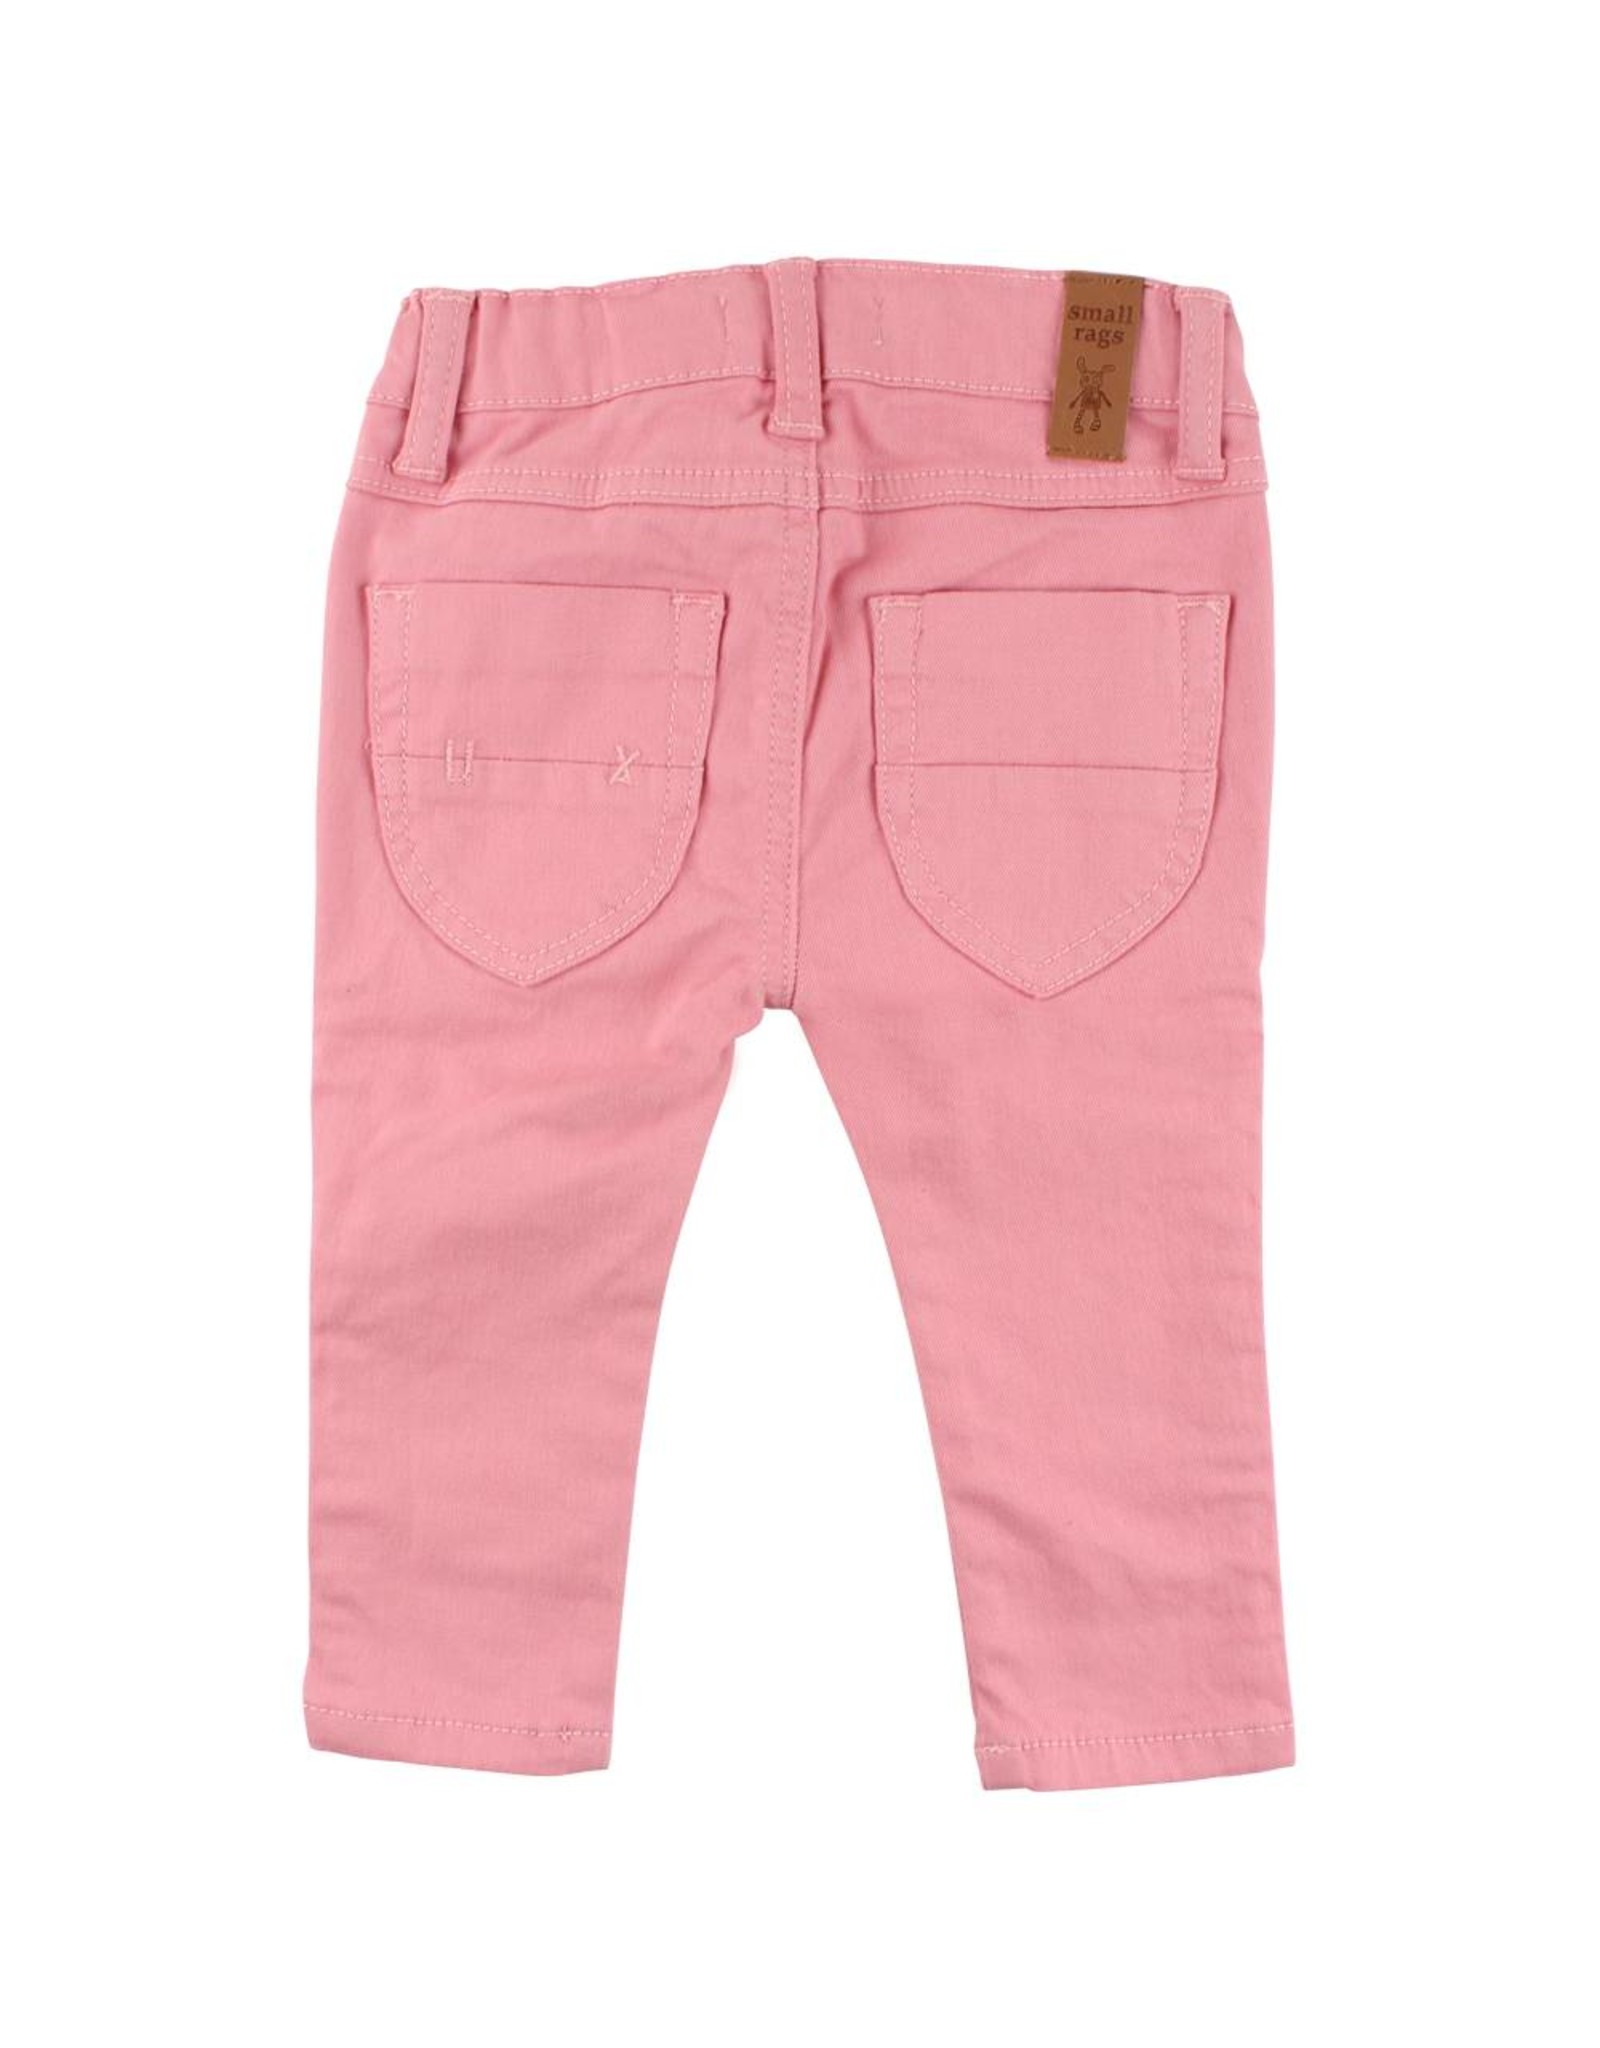 Small Rags Small Rags Pants Rosette